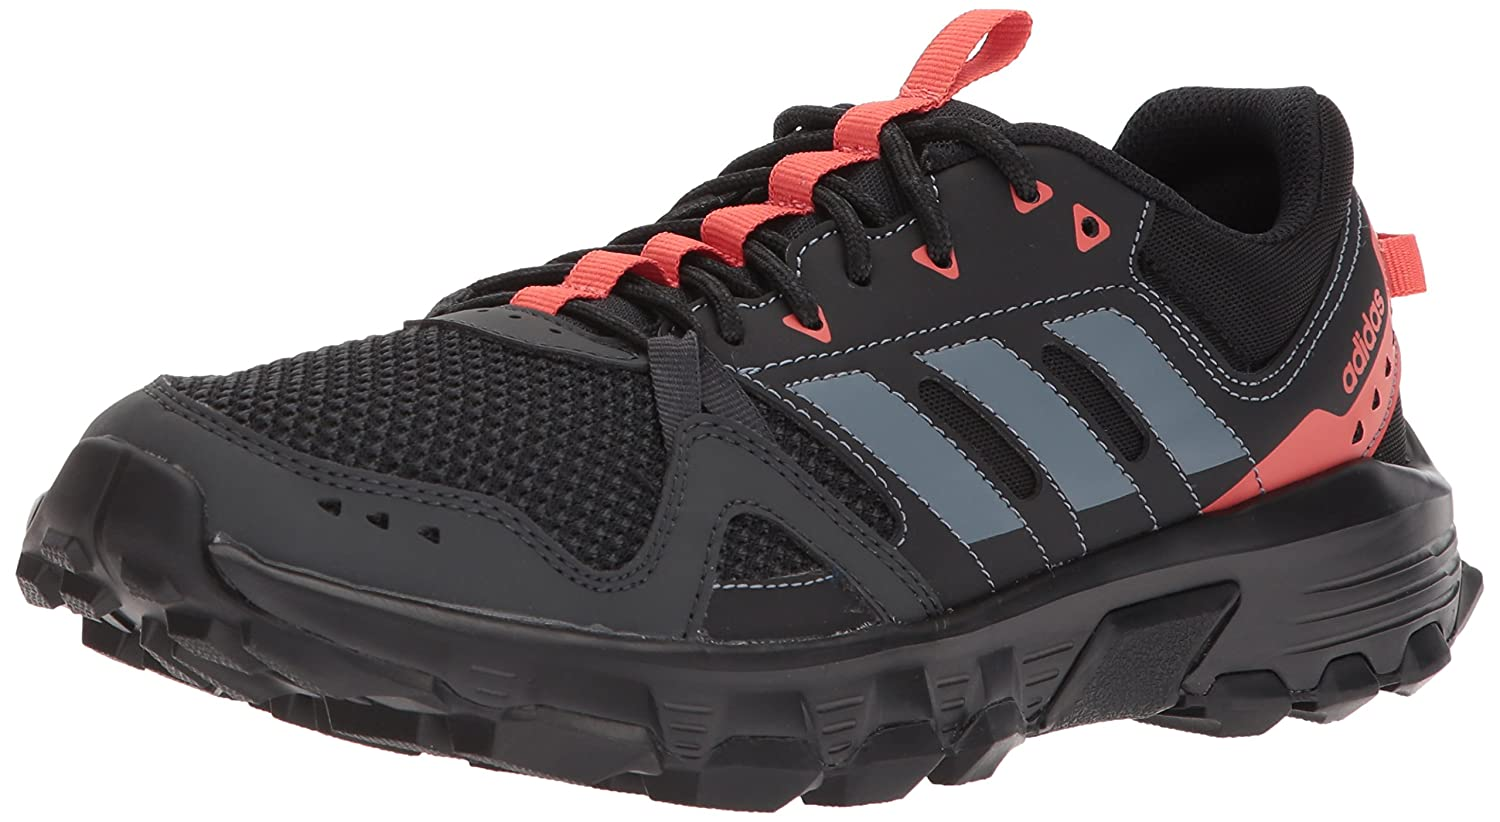 adidas Men's Rockadia Trail Ankle High Running Shoe: Adidas